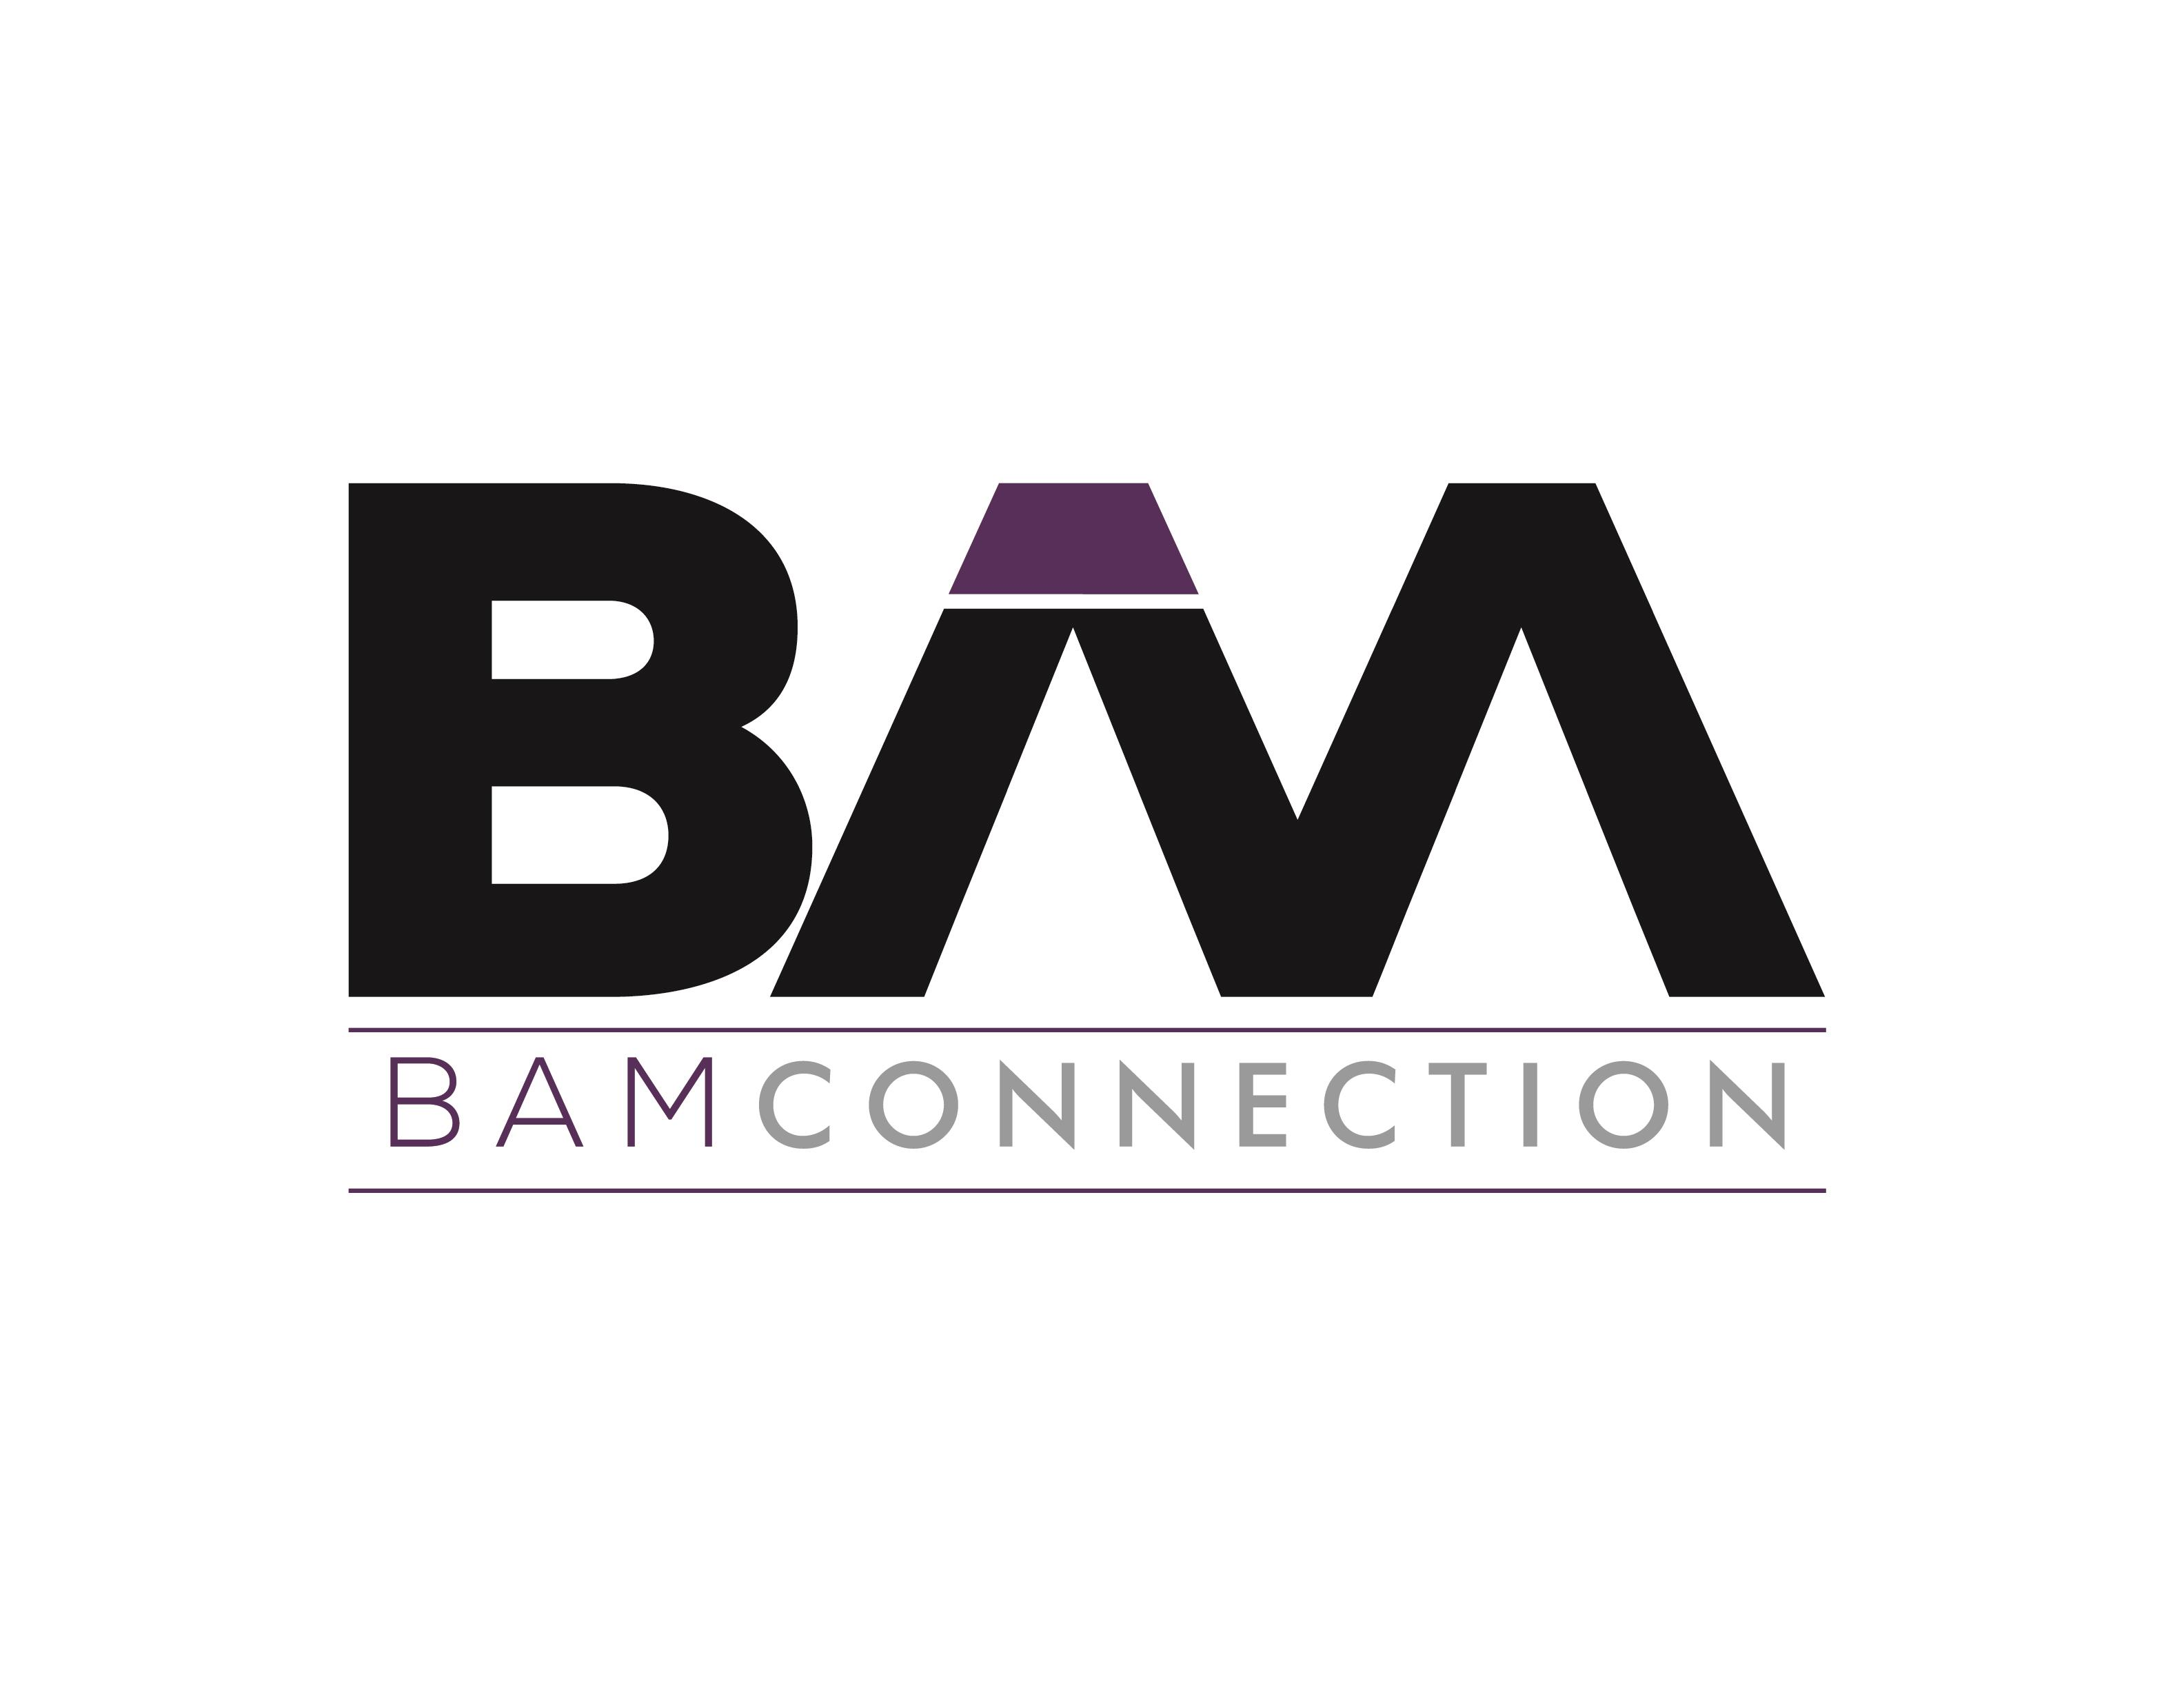 The BAM Connection